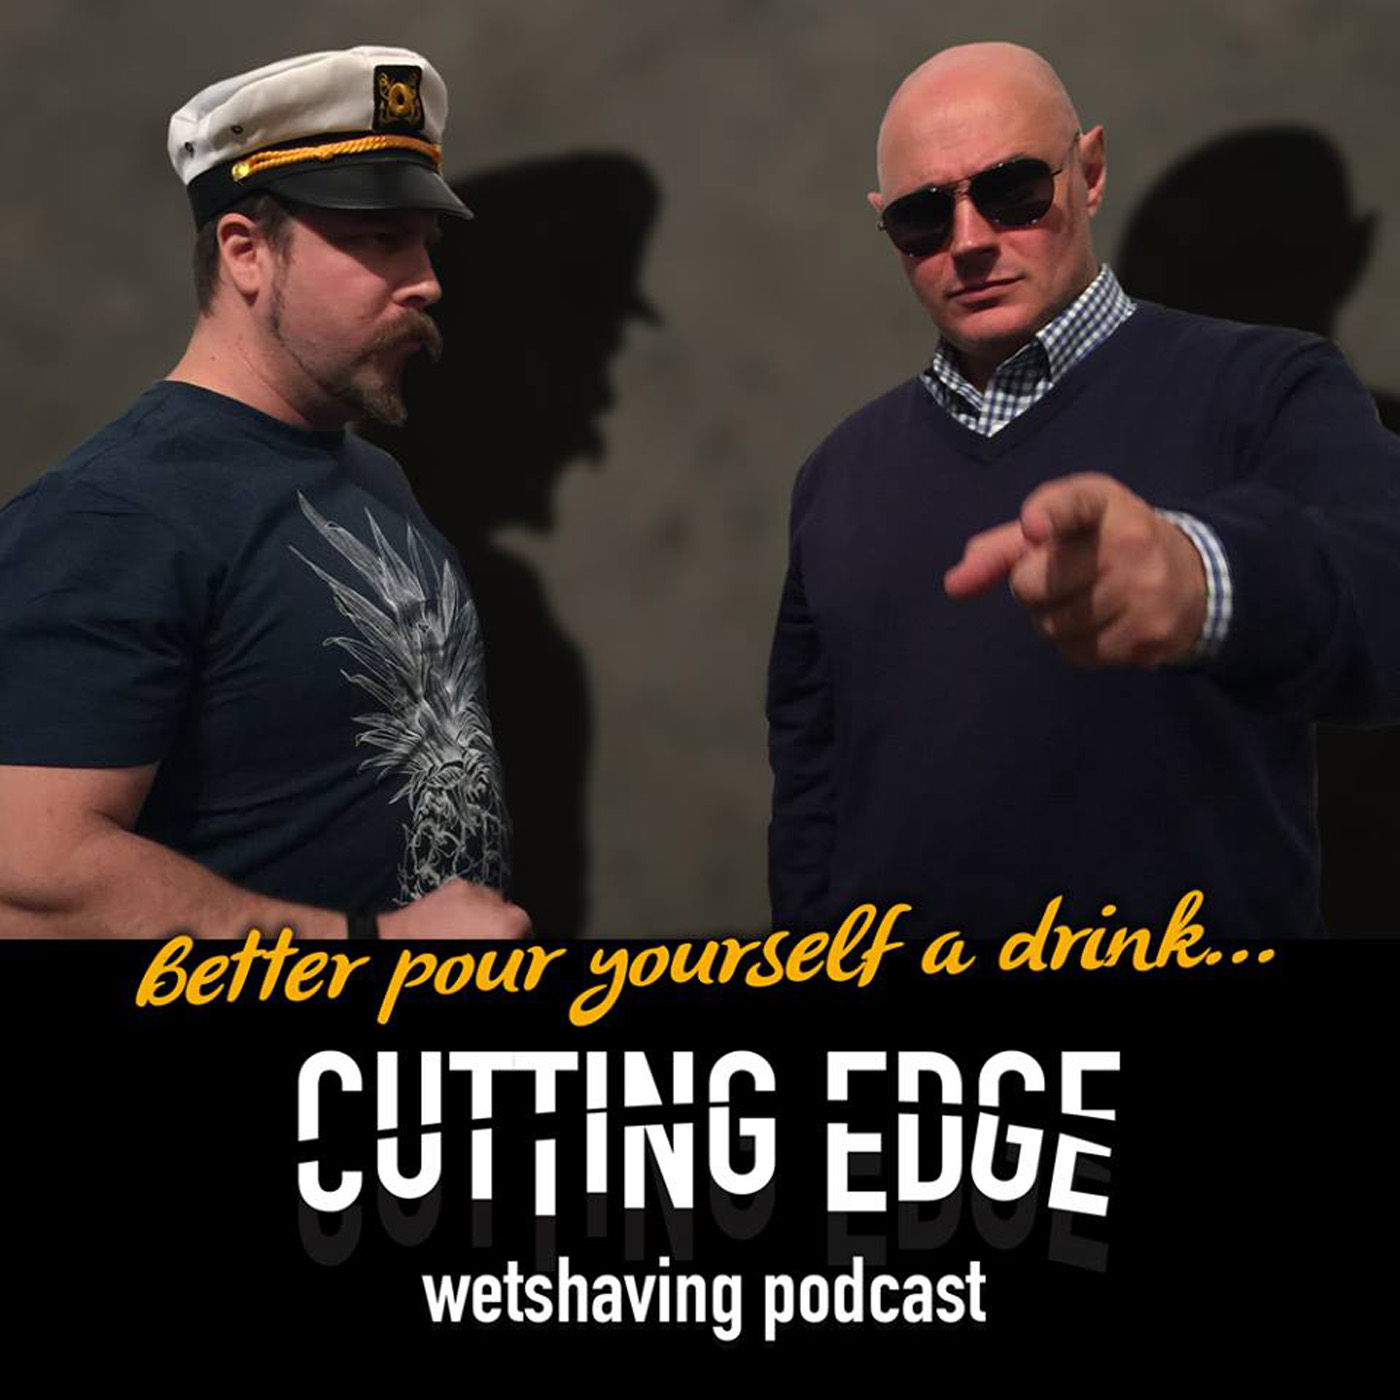 Cutting Edge Wet Shaving Podcast